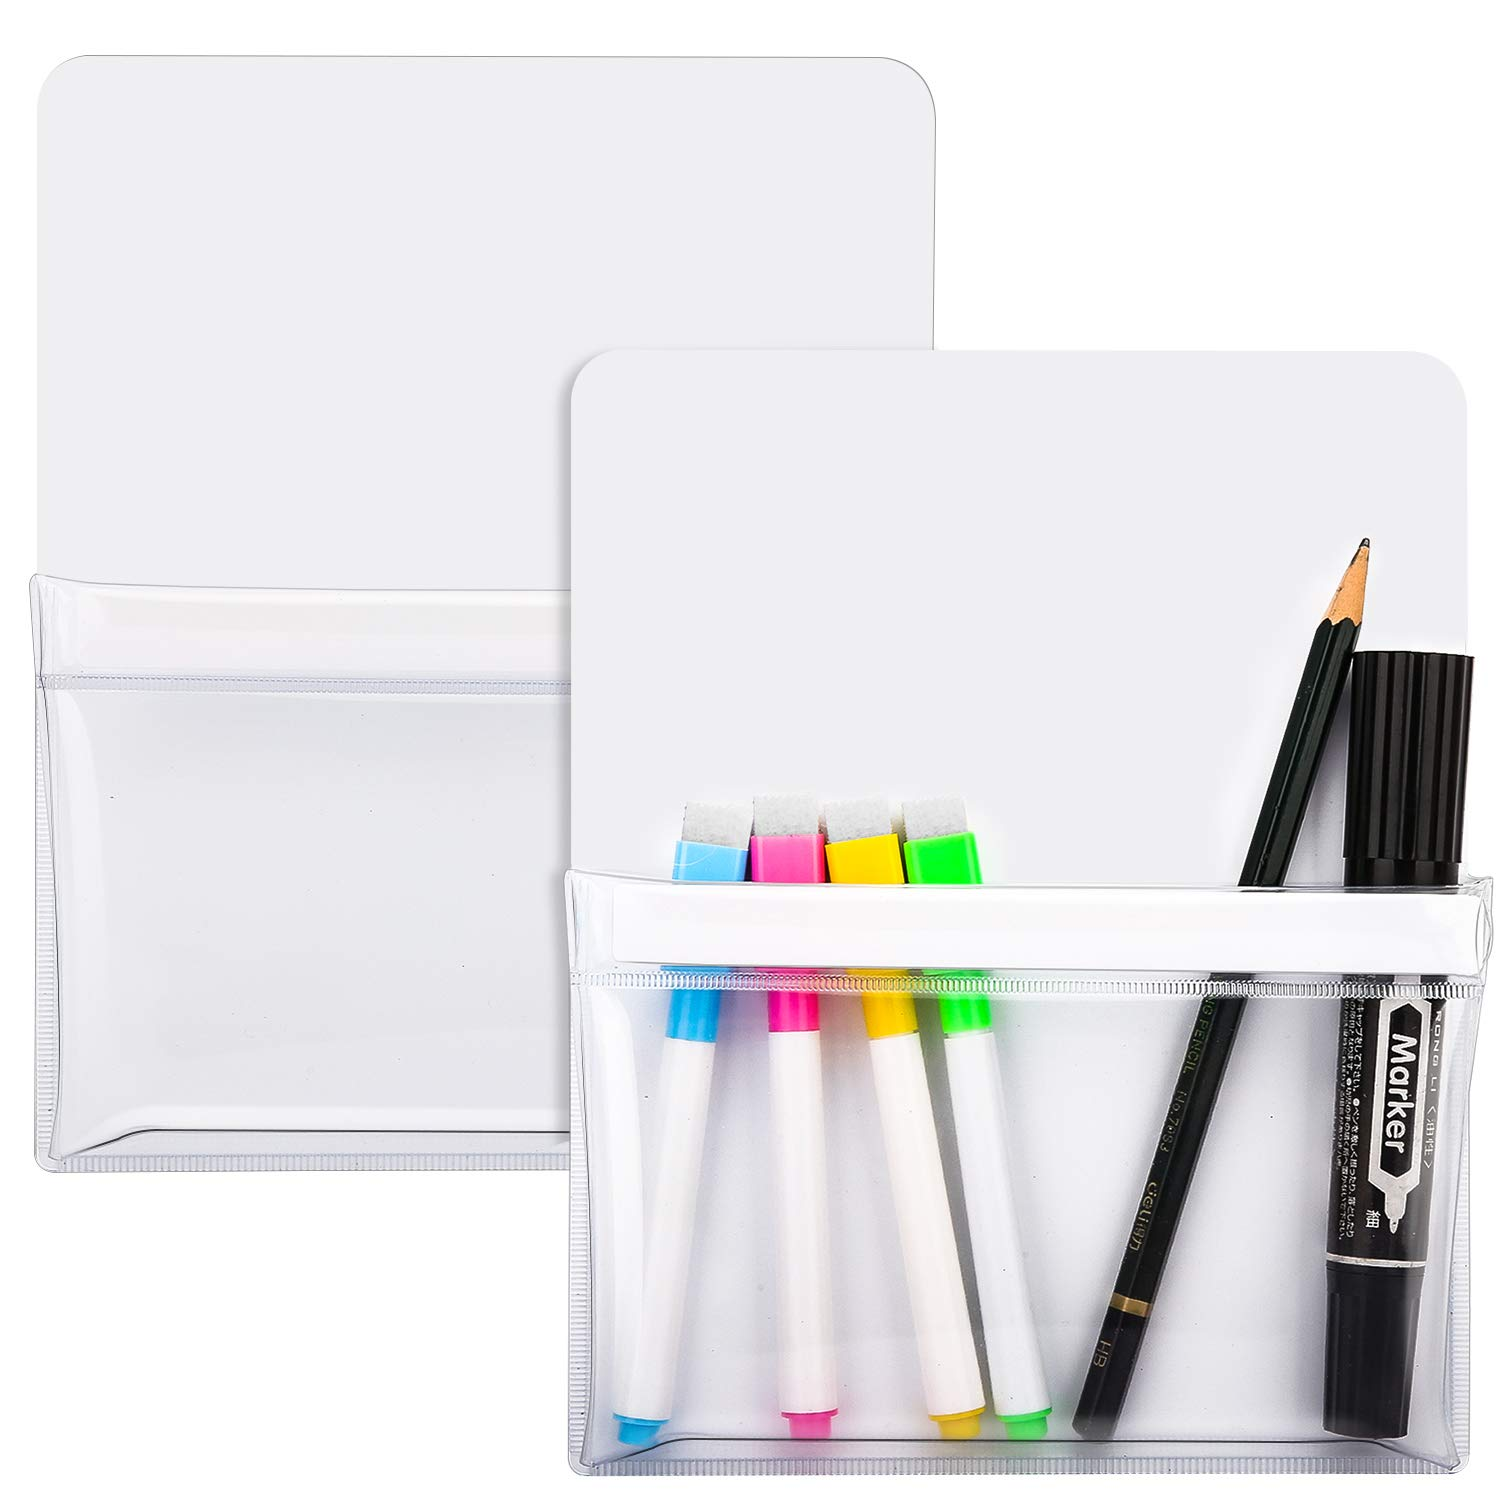 MoKo Magnetic Pen Holder [2 Pack], Dry Erase Marker Holder Organizer Pencil Cup for Refrigerator, Whiteboard, Fridge, Locker, Office Glass and Other Magnetic Surfaces, White